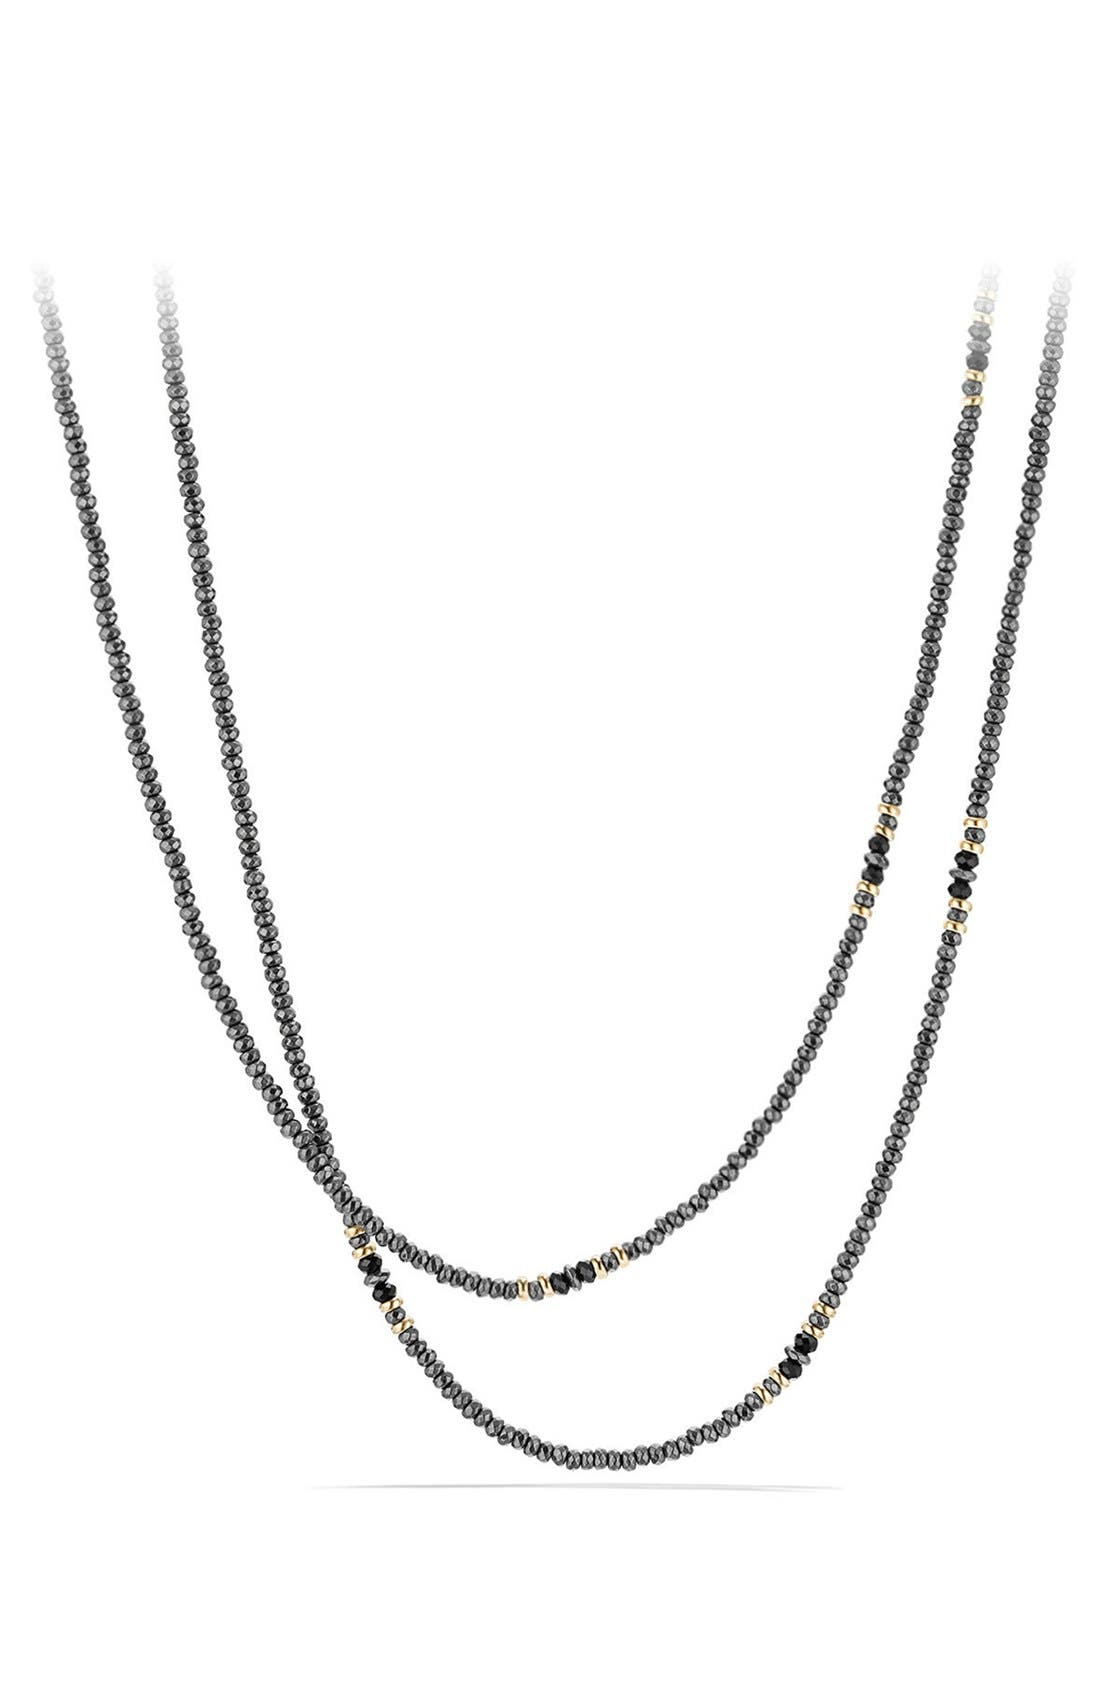 Osetra Tweejoux Necklace with 18K Gold,                         Main,                         color, Hematine